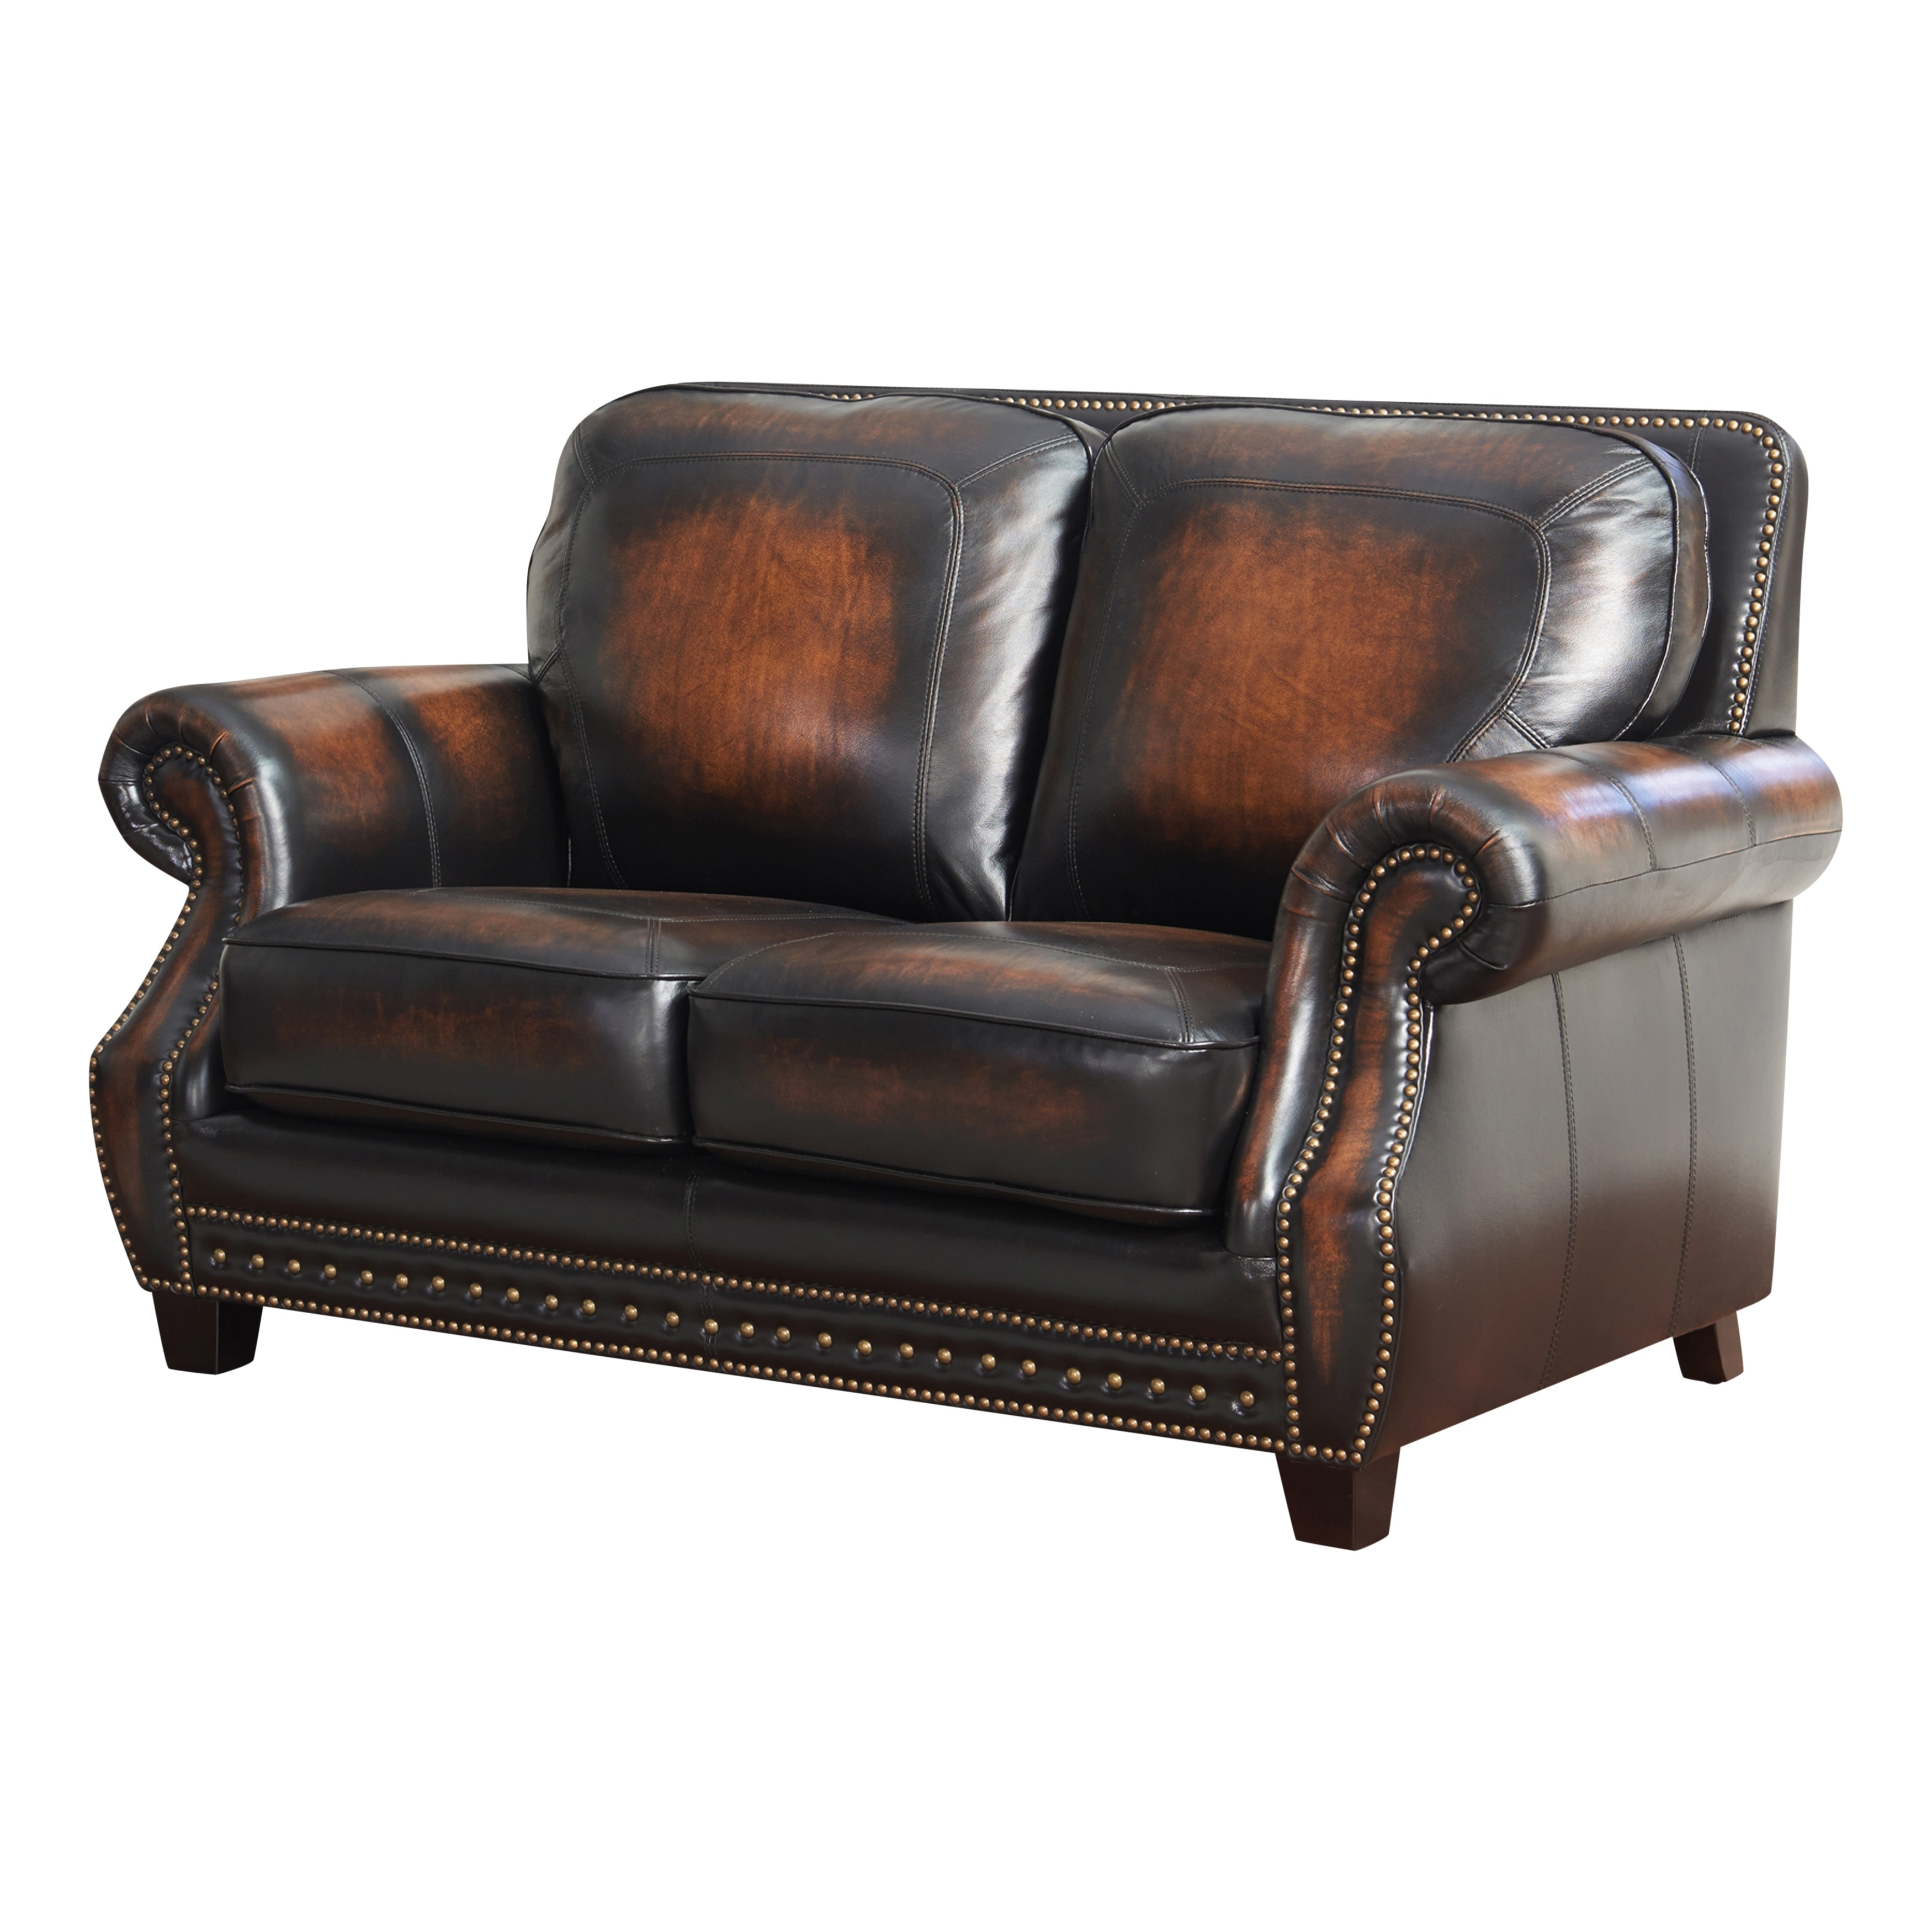 Pleasant Abbyson Crawford Leather Loveseat Unemploymentrelief Wooden Chair Designs For Living Room Unemploymentrelieforg